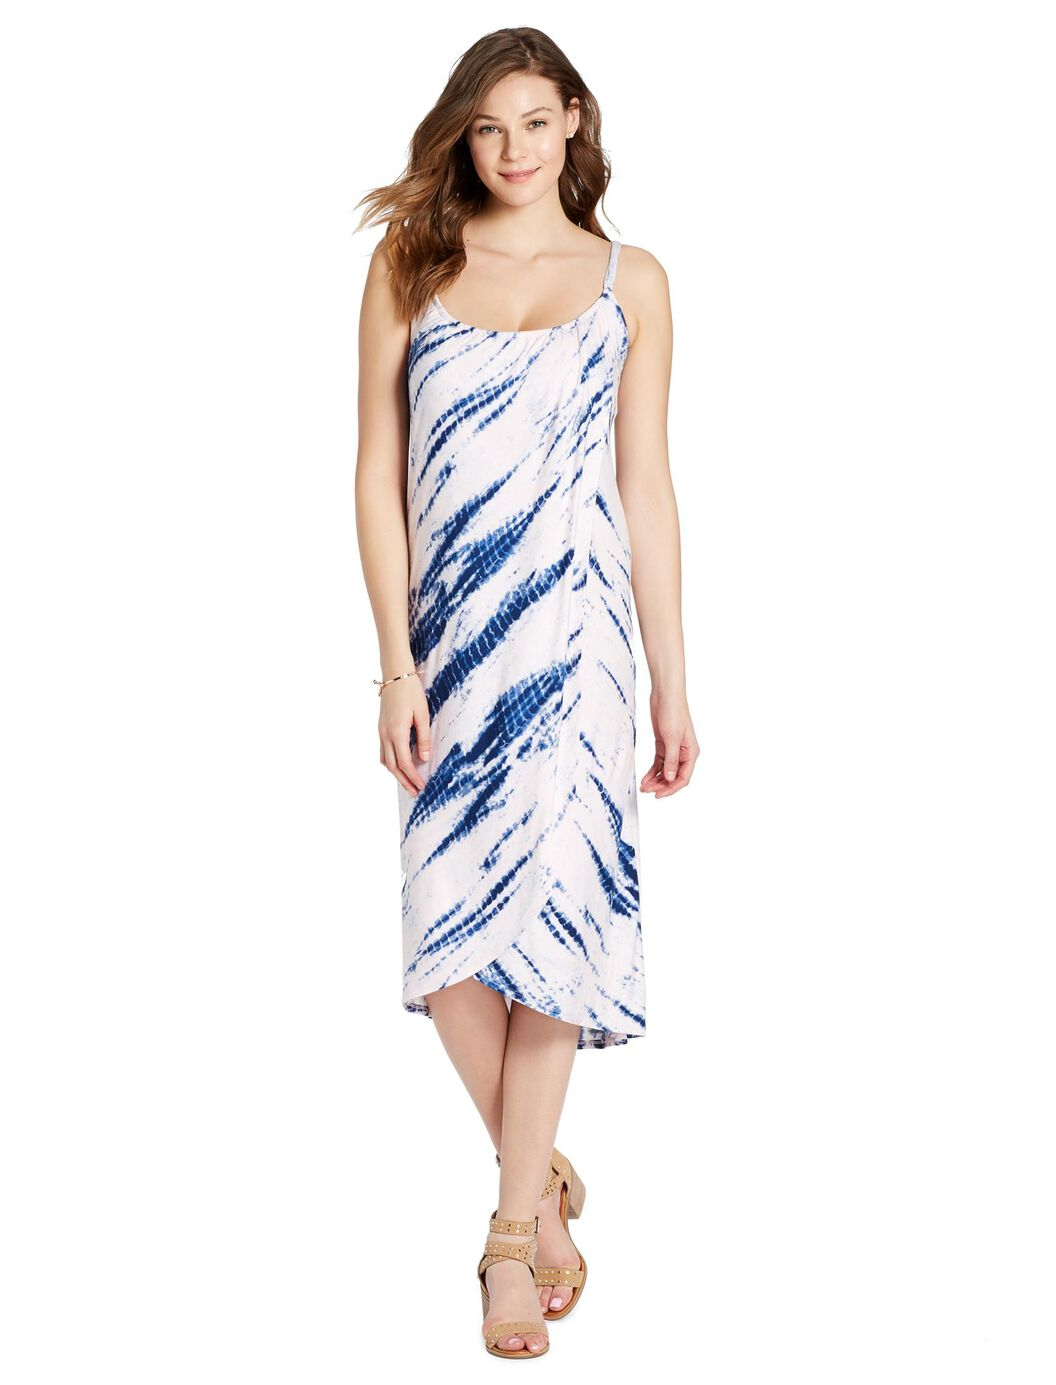 Jessica Simpson Tie Dye Nursing Dress at Motherhood Maternity in Victor, NY | Tuggl